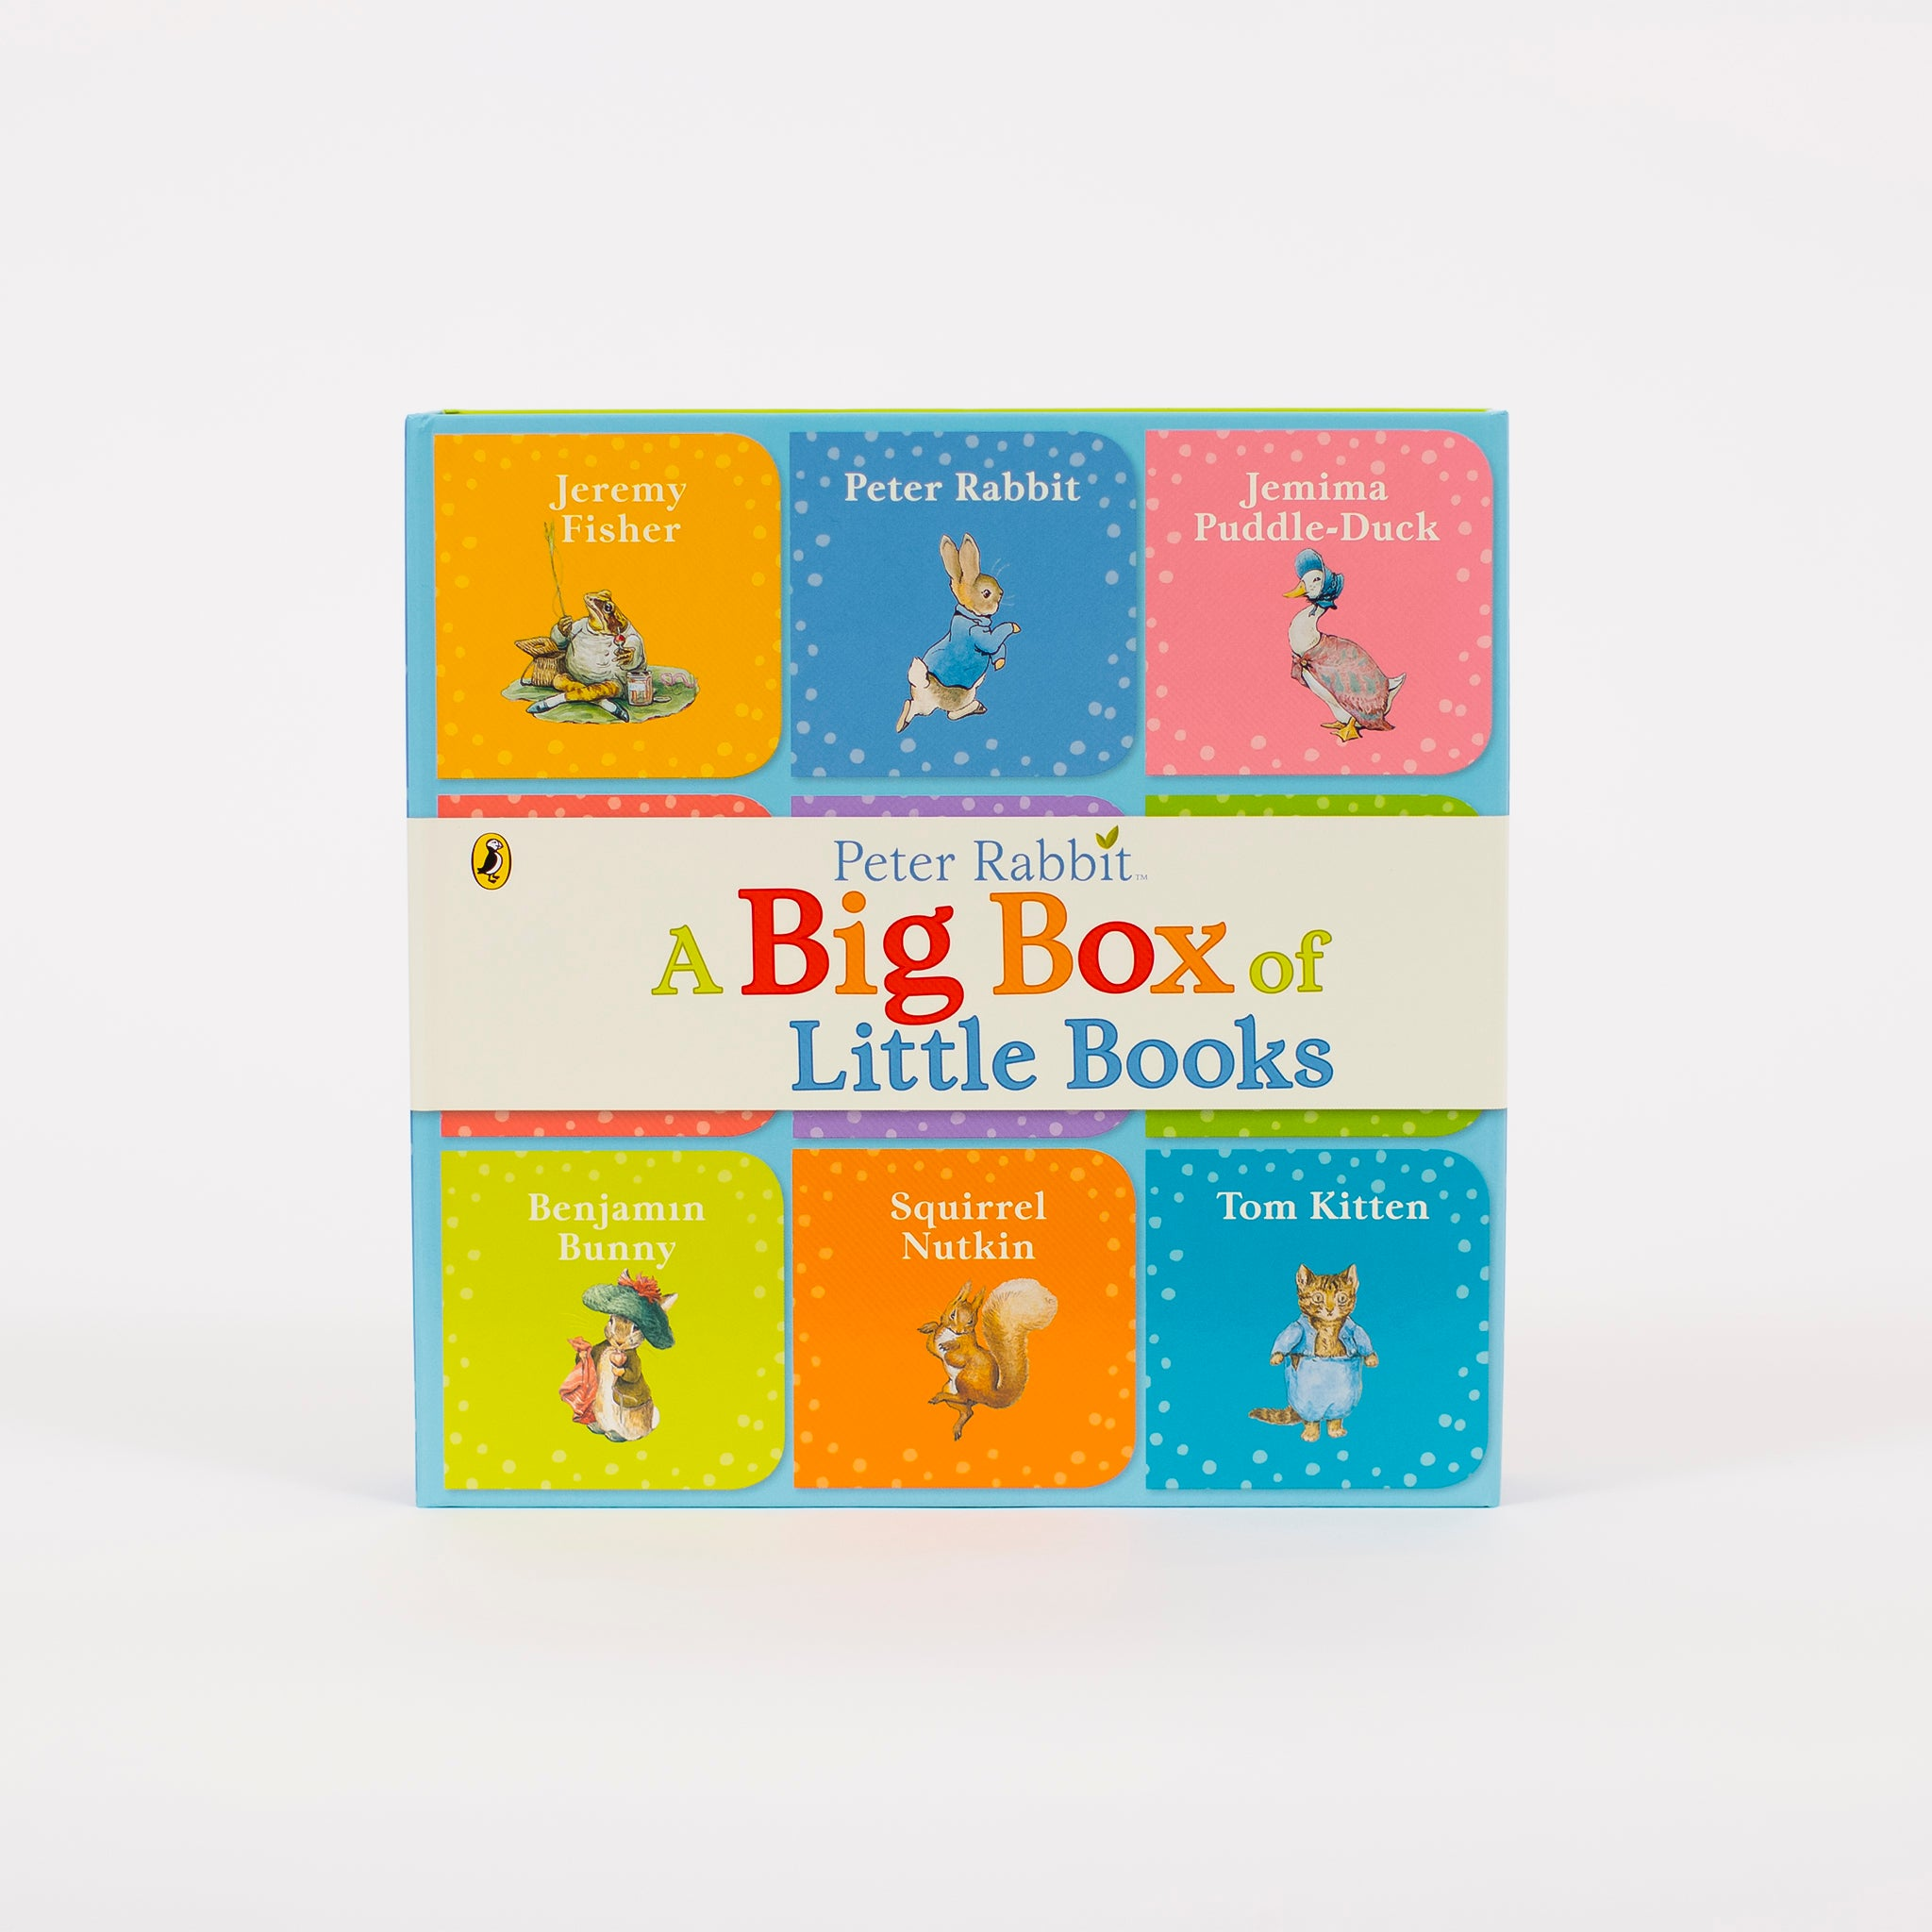 Peter Rabbit - A Big Box of Little Books